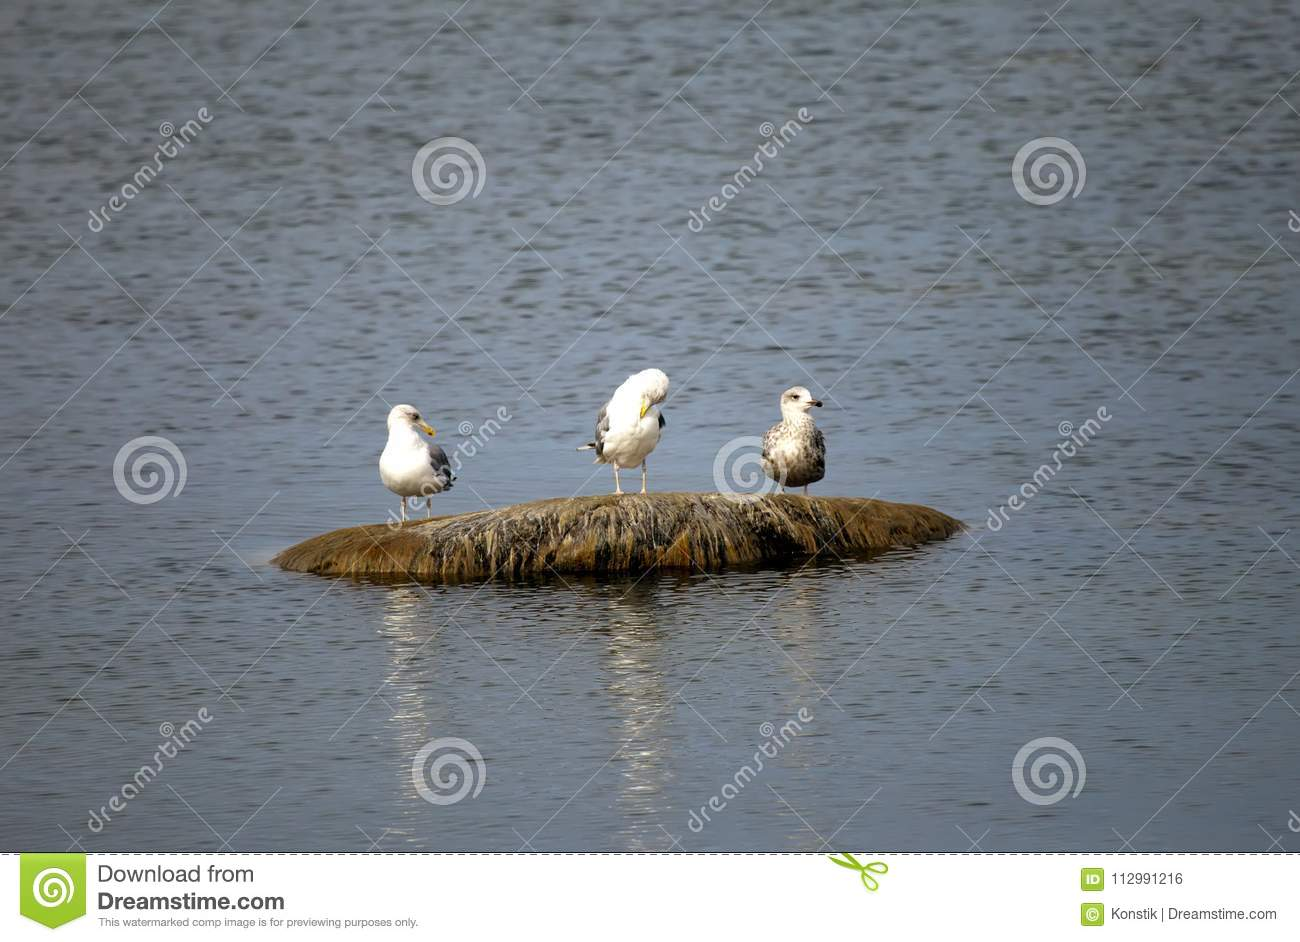 Three seagulls sit on a stone in the sea